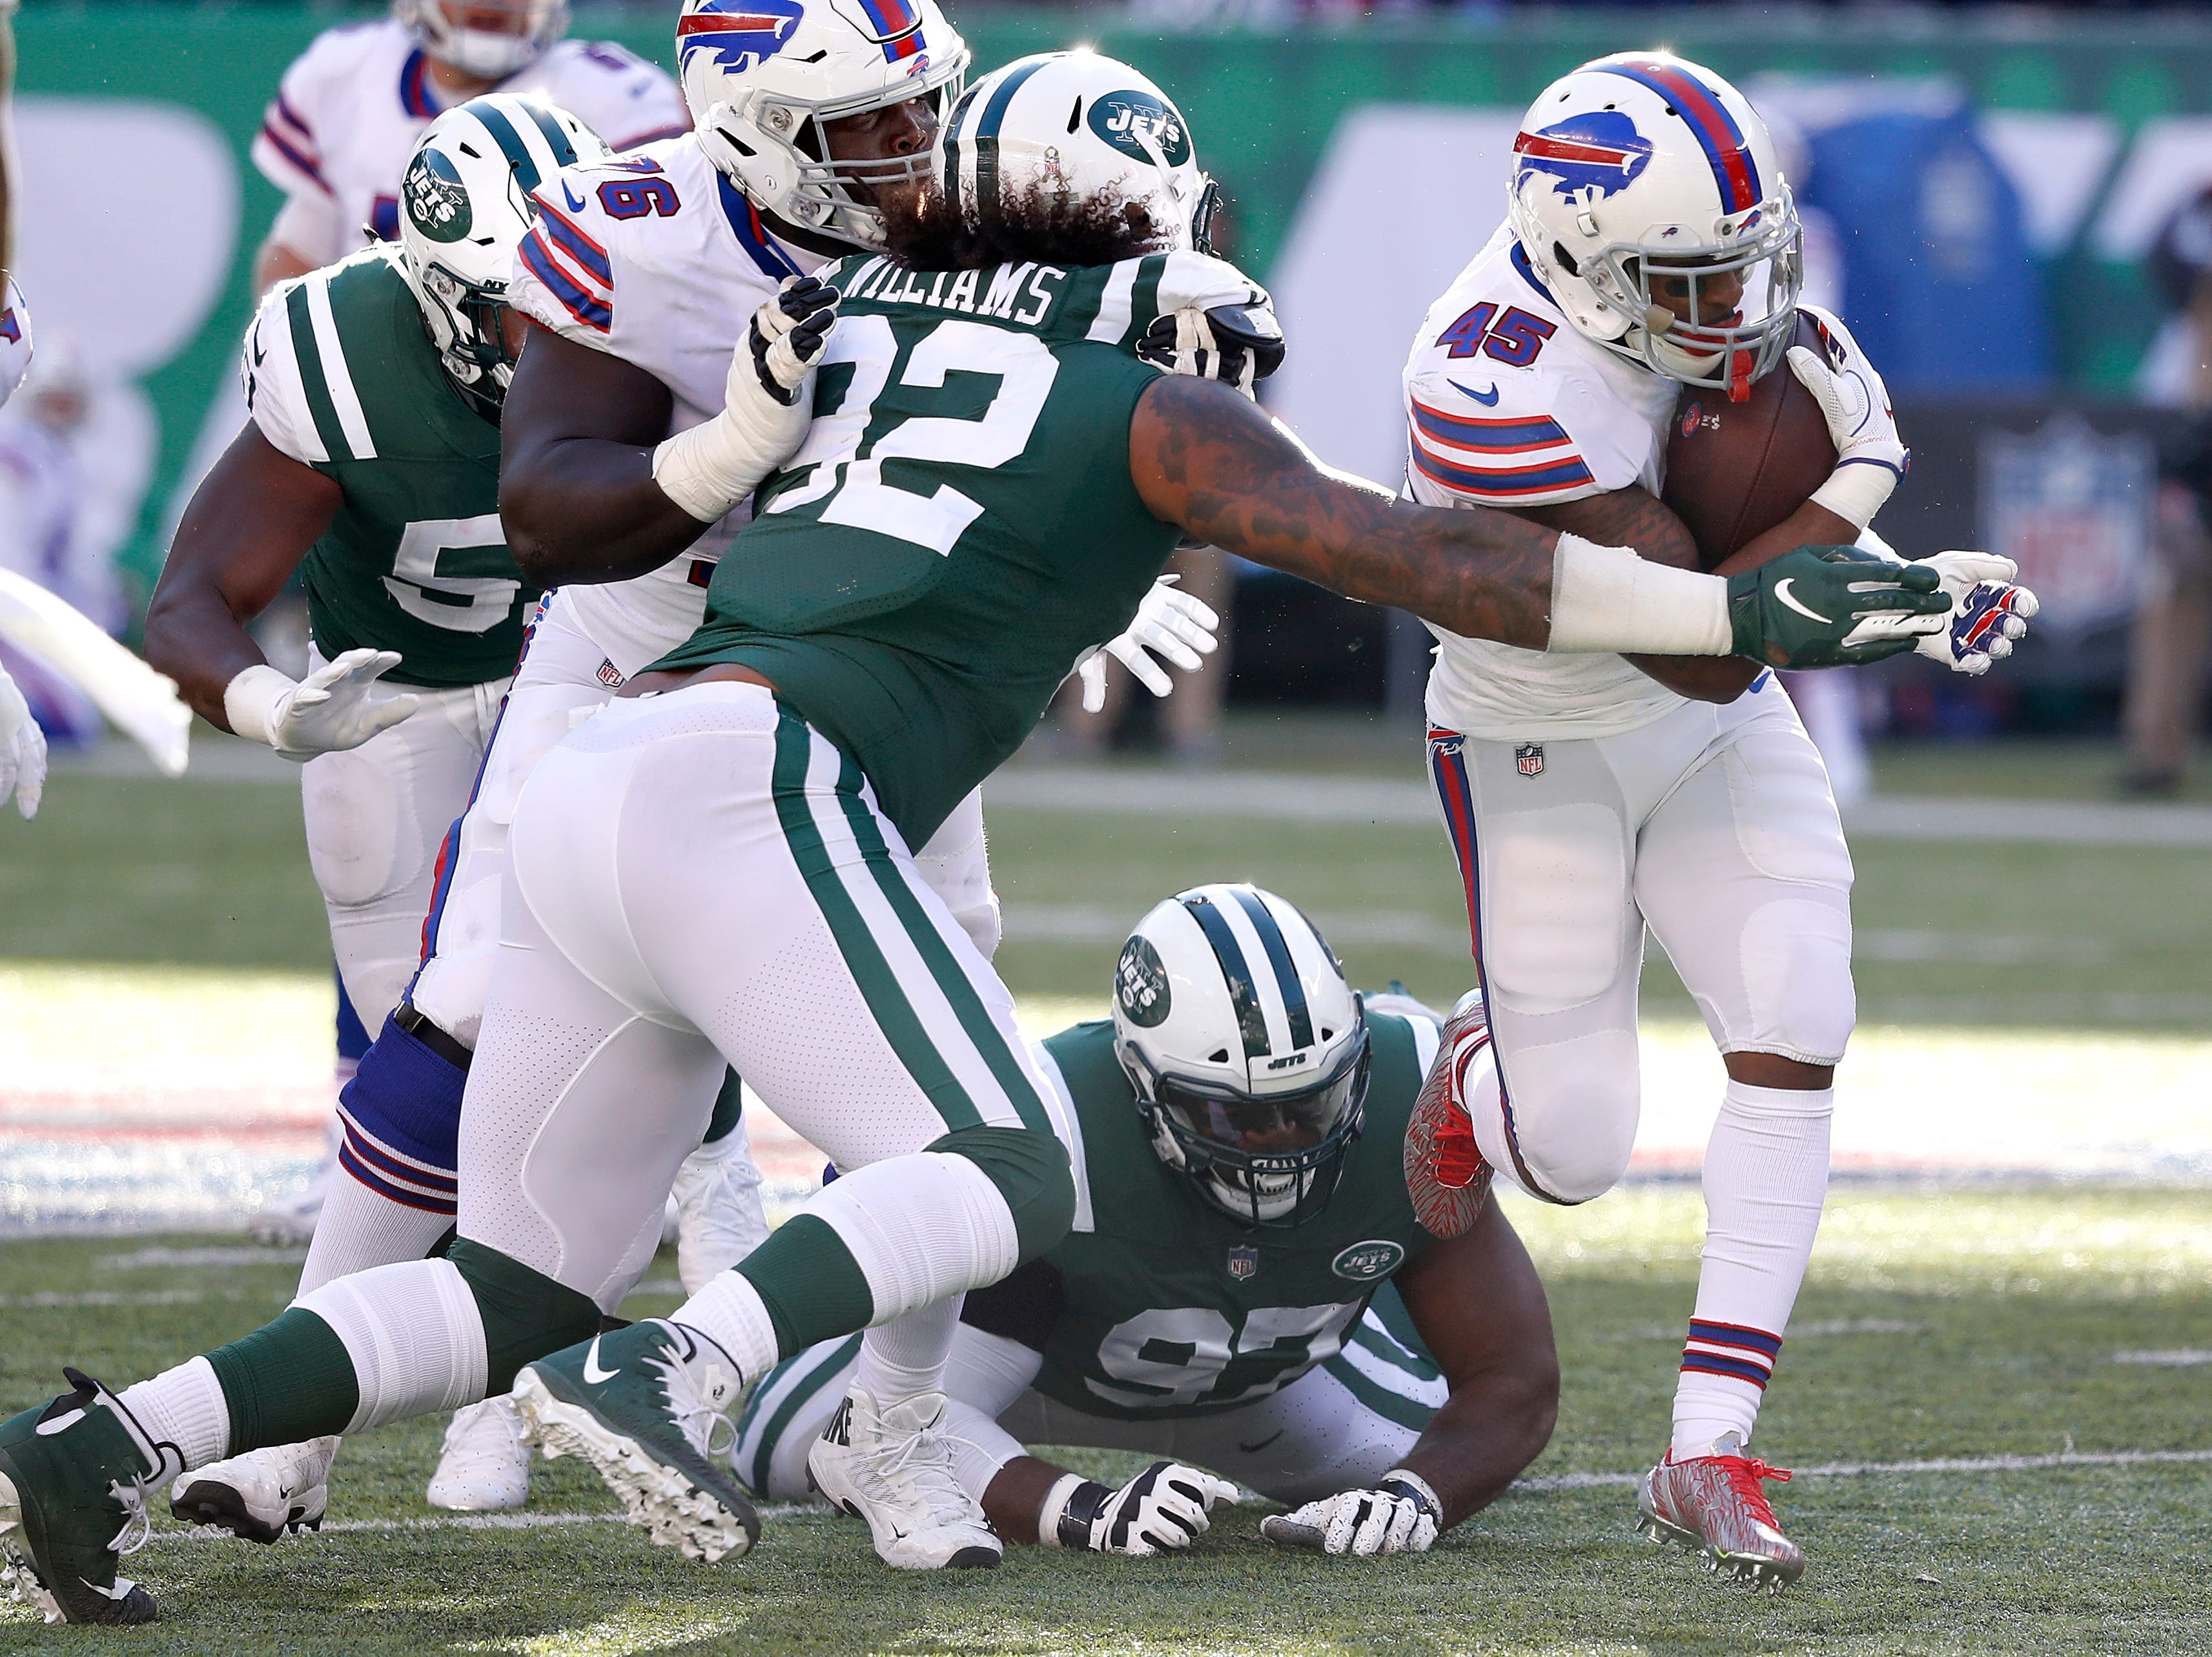 EAST RUTHERFORD, NEW JERSEY - NOVEMBER 11: Marcus Murphy #45 of the Buffalo Bills runs the ball against Leonard Williams #92 of the New York Jets during the second quarter at MetLife Stadium on November 11, 2018 in East Rutherford, New Jersey. (Photo by Michael Owens/Getty Images)